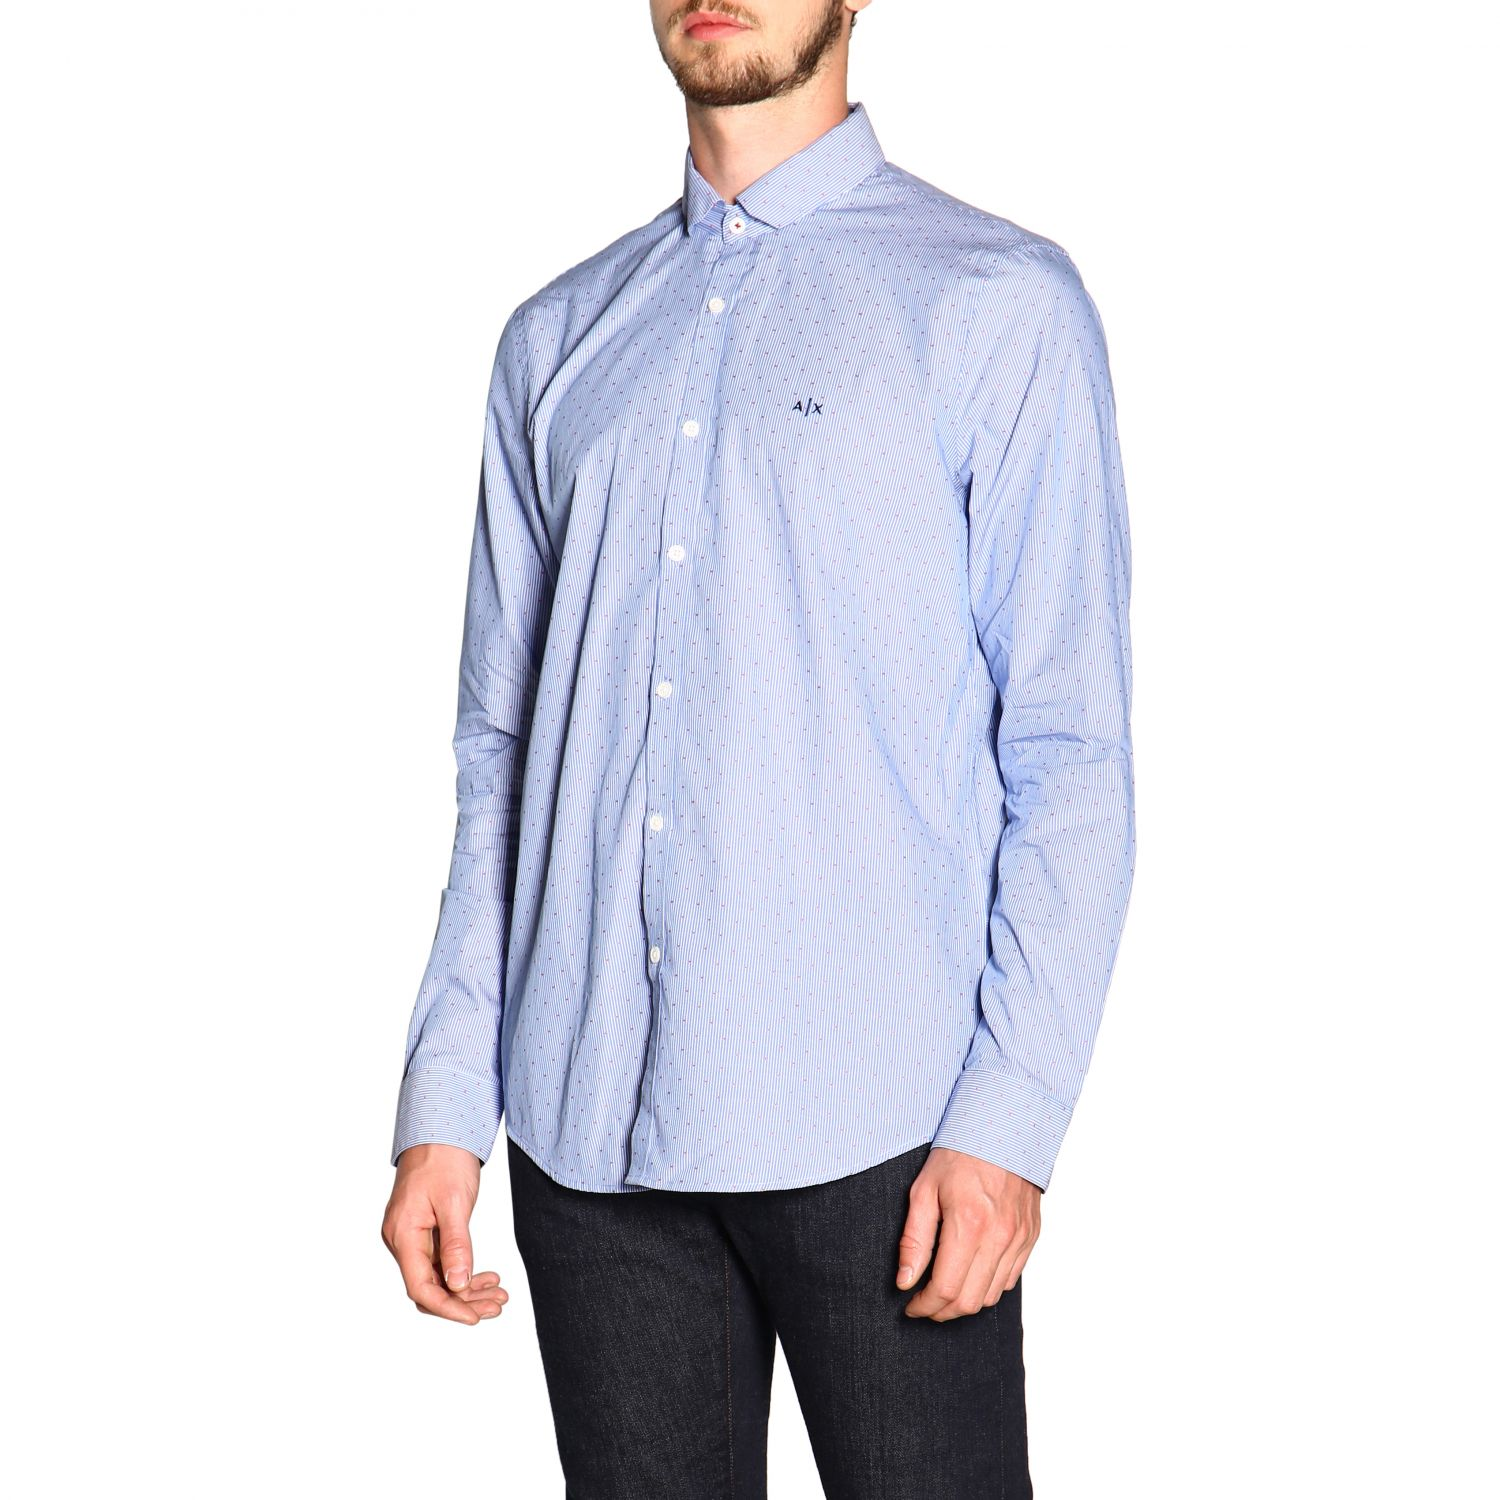 Shirt men Armani Exchange gnawed blue 4